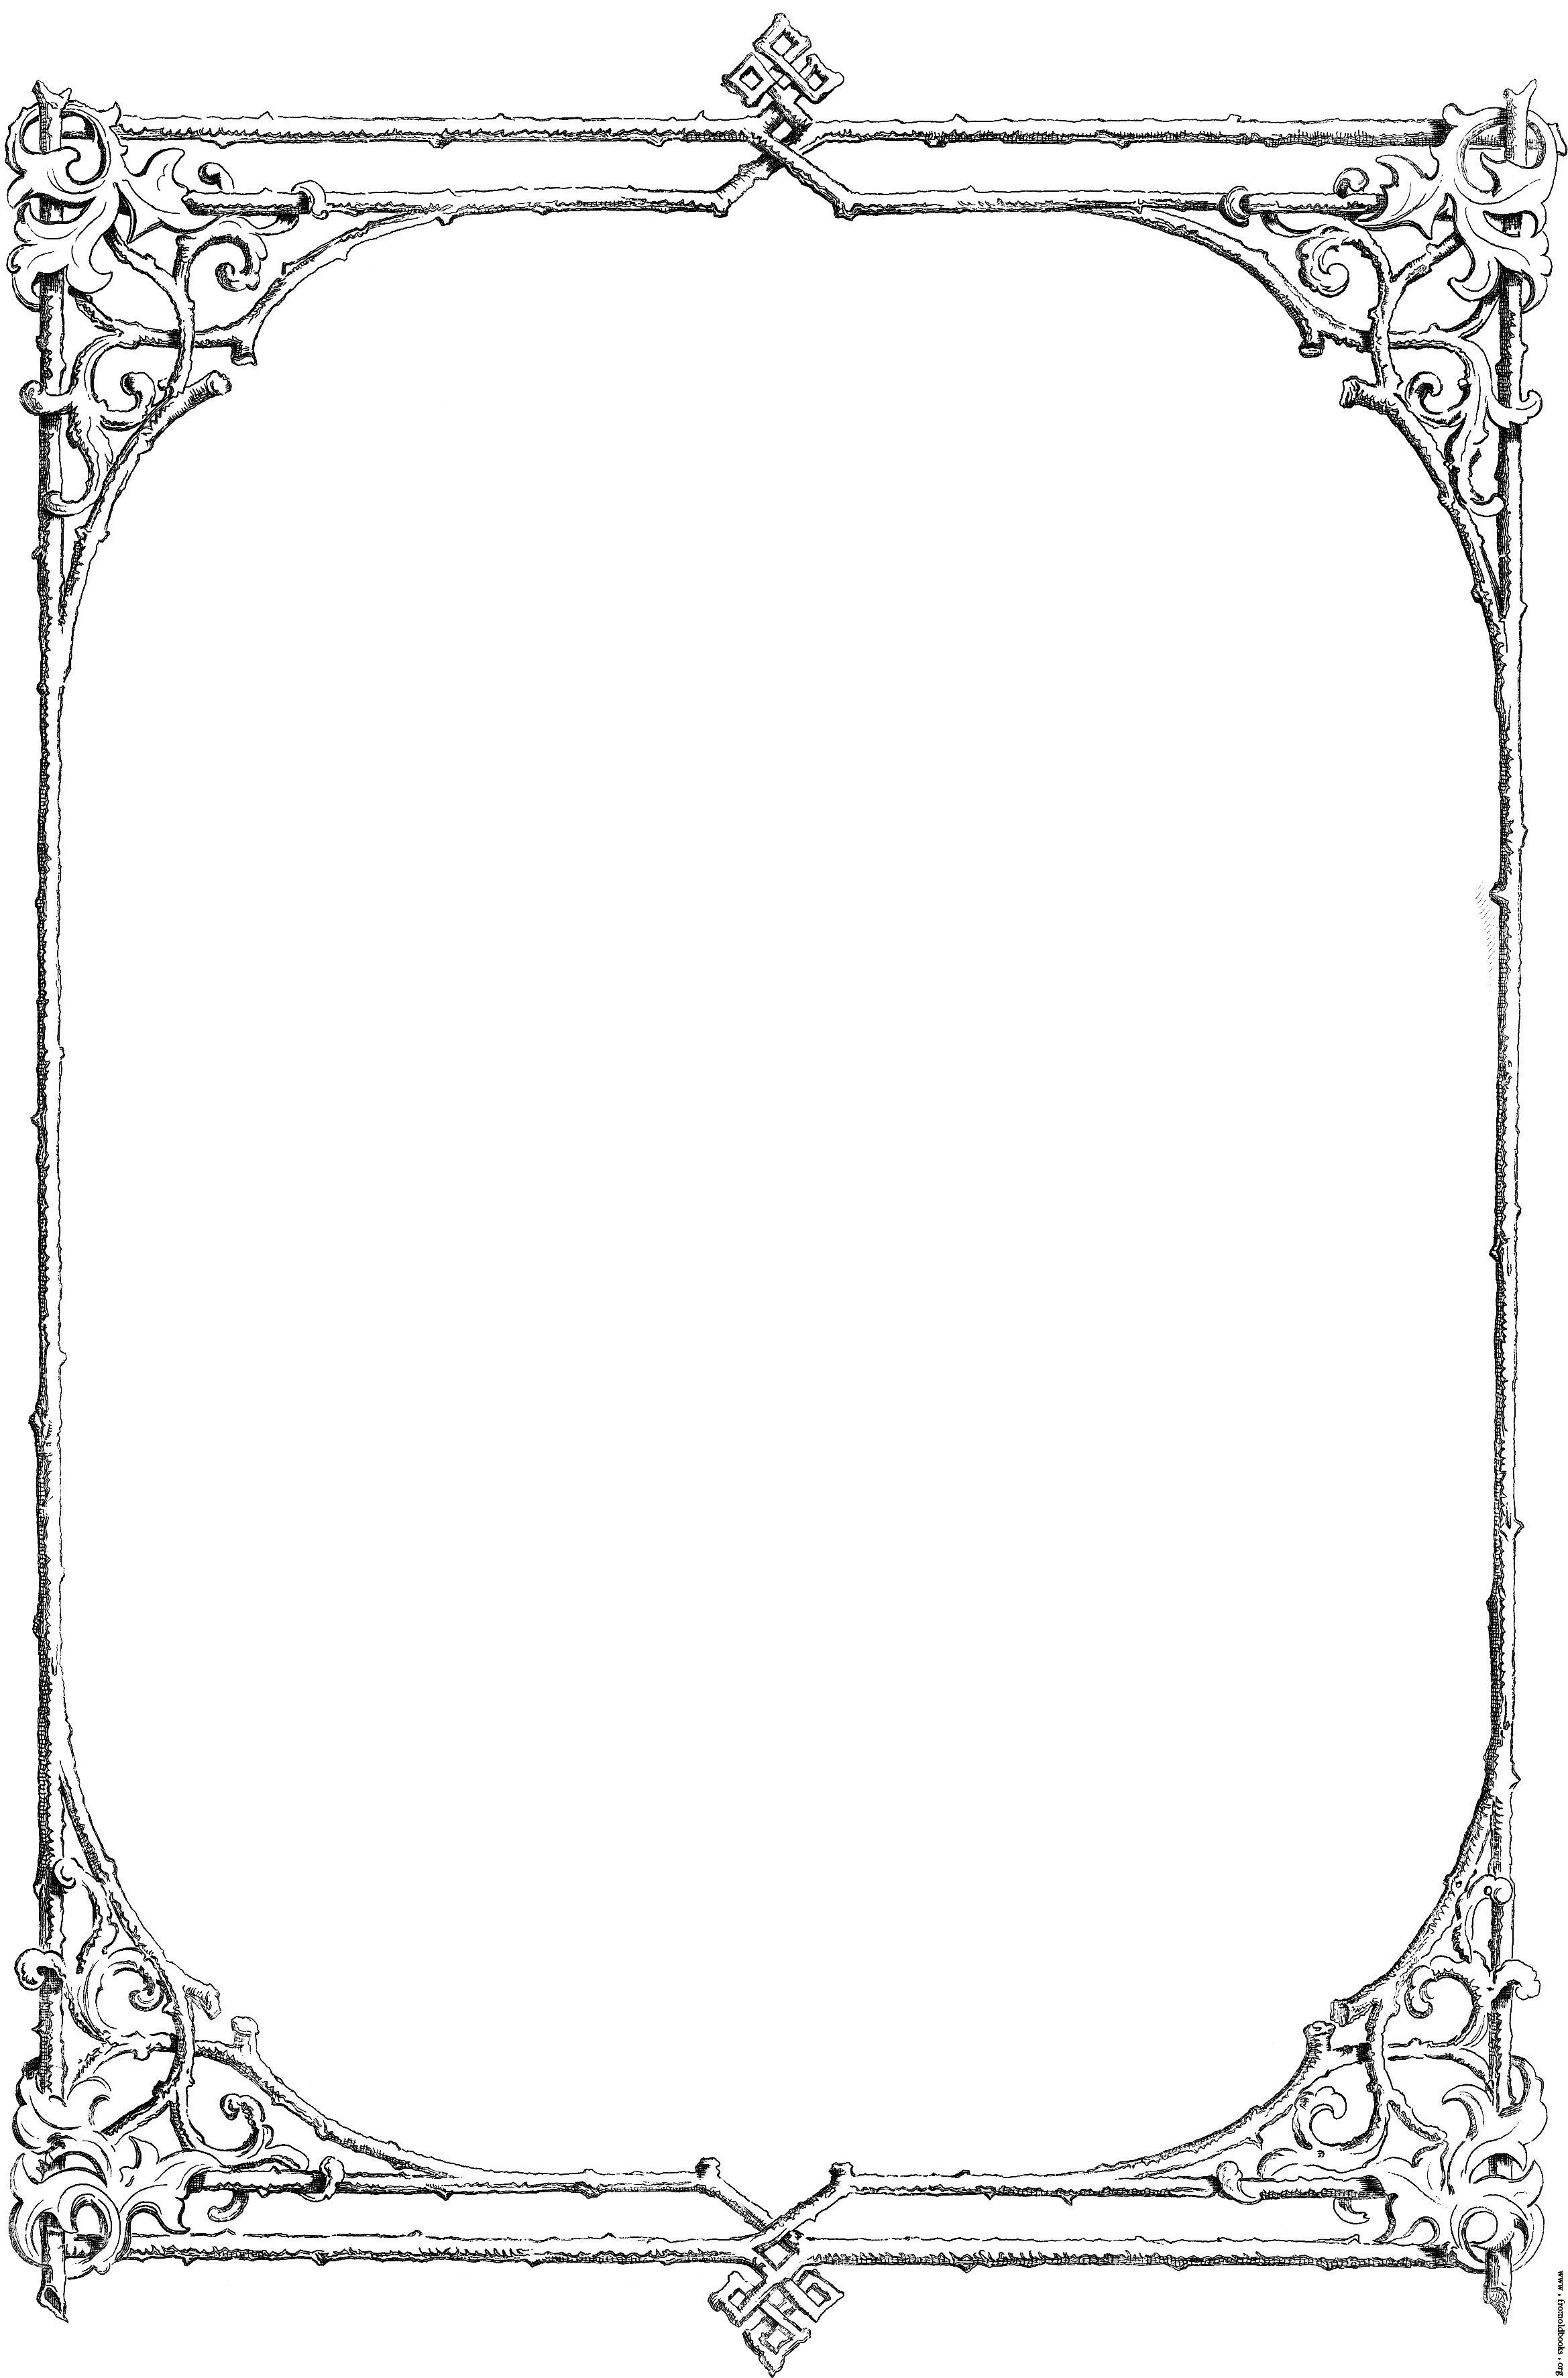 Victorian clipart banner. Free black and white